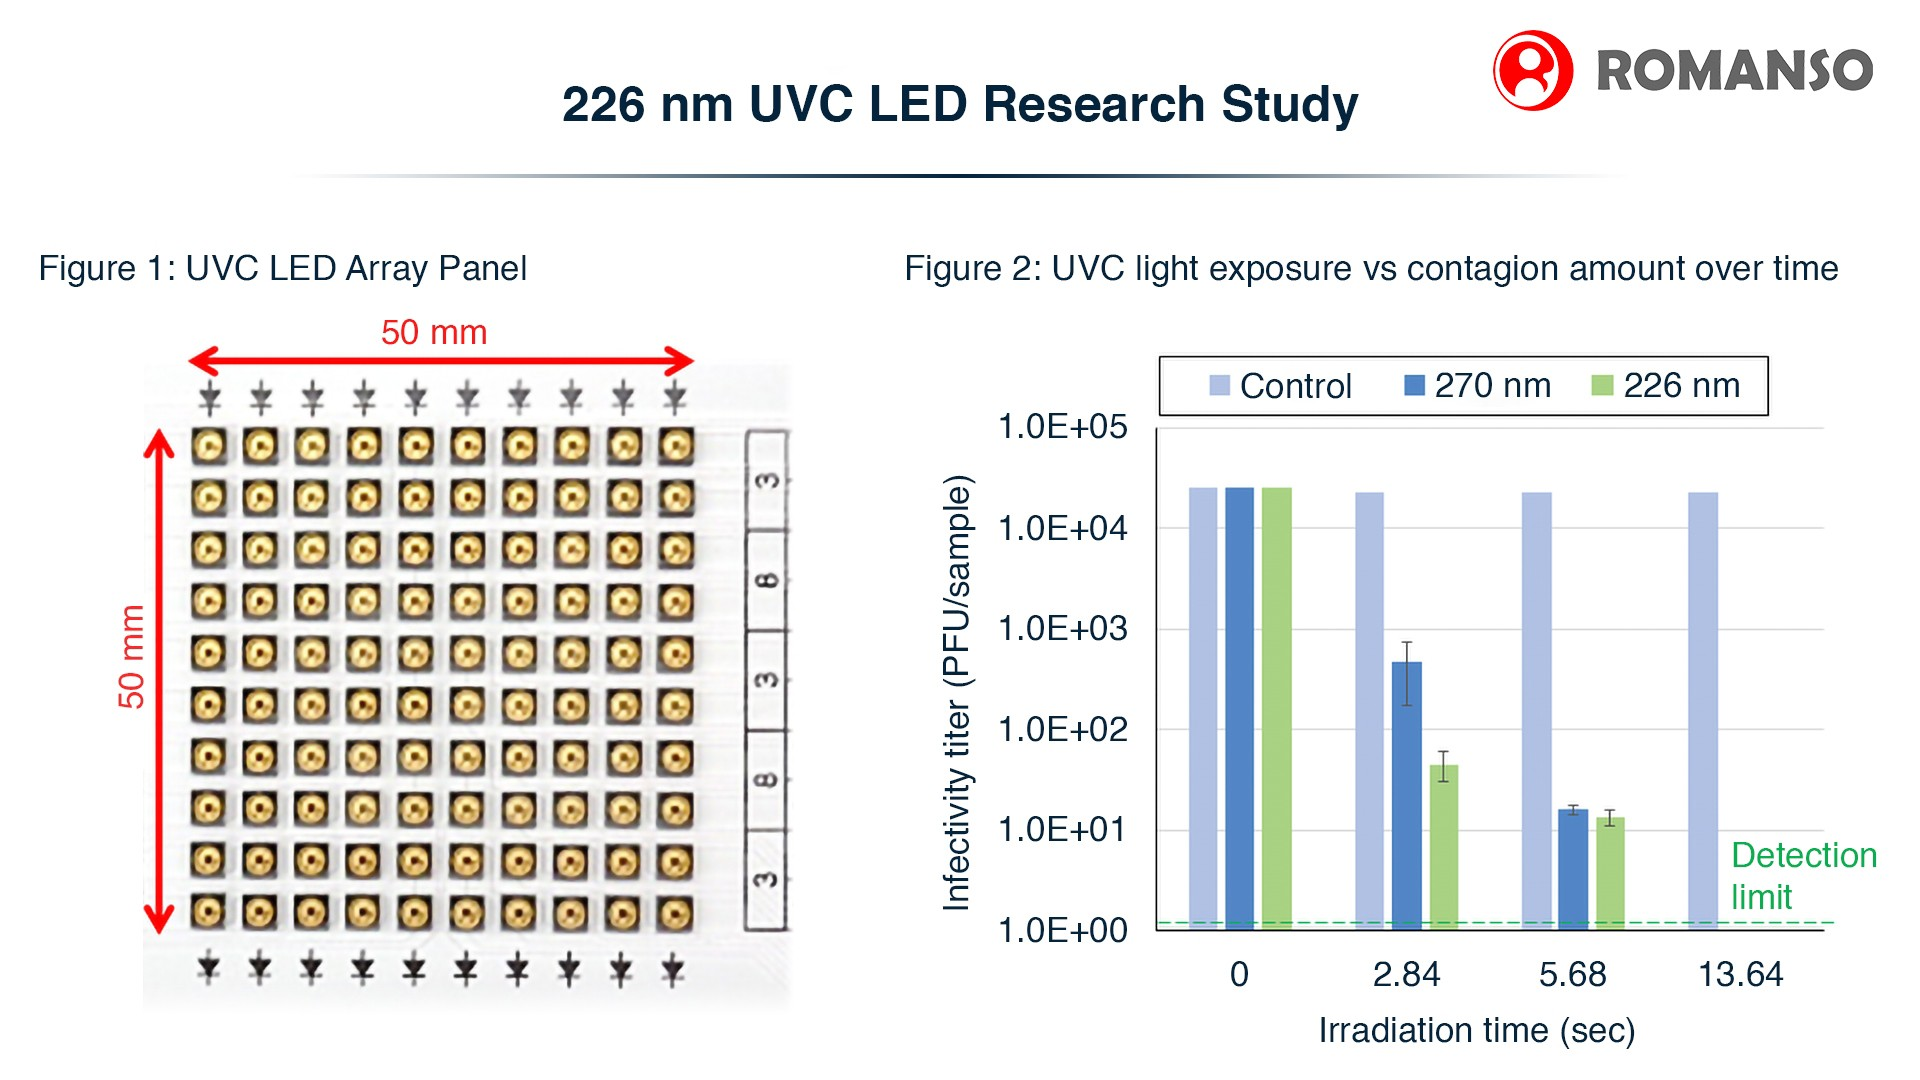 Studies Have Shown to Confirm 226 nm UVC LED Efficacy Against SARS-CoV-2 and Verify Reduced Effect on Animal Skin Cells